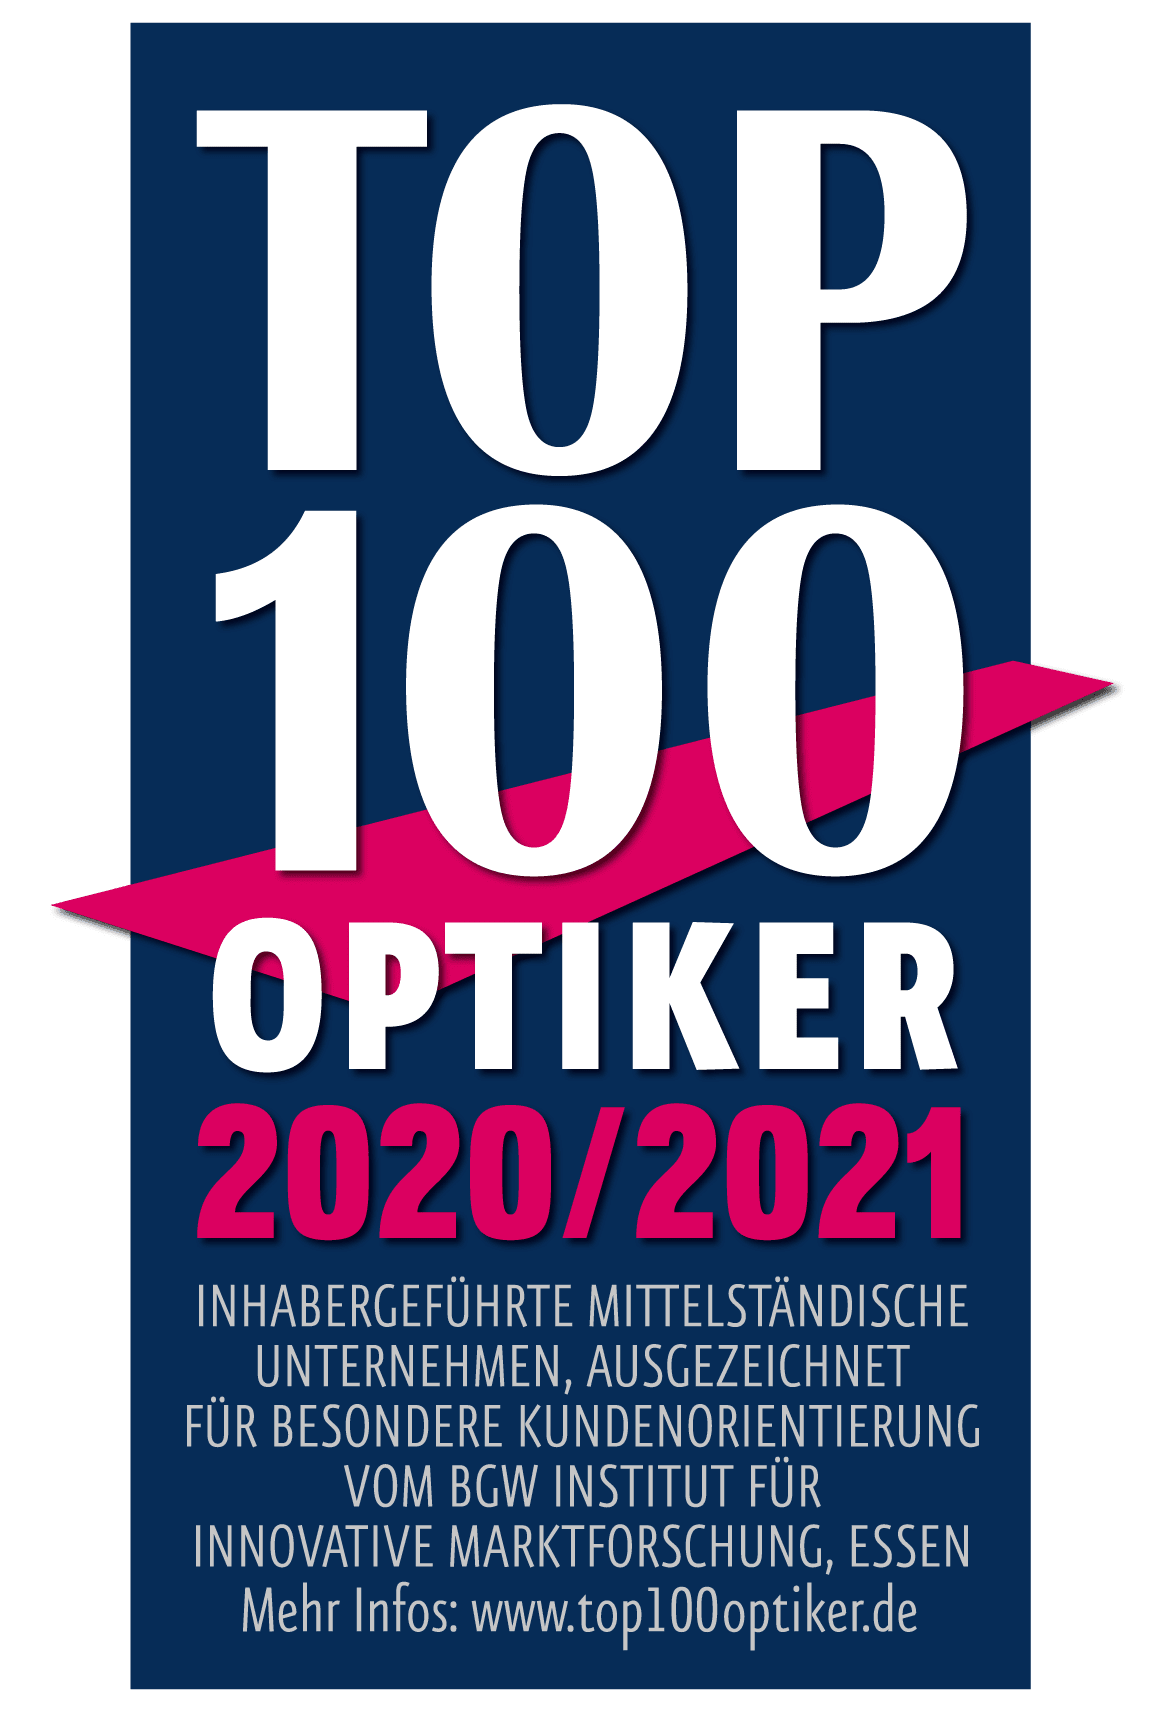 Top 100 Optiker